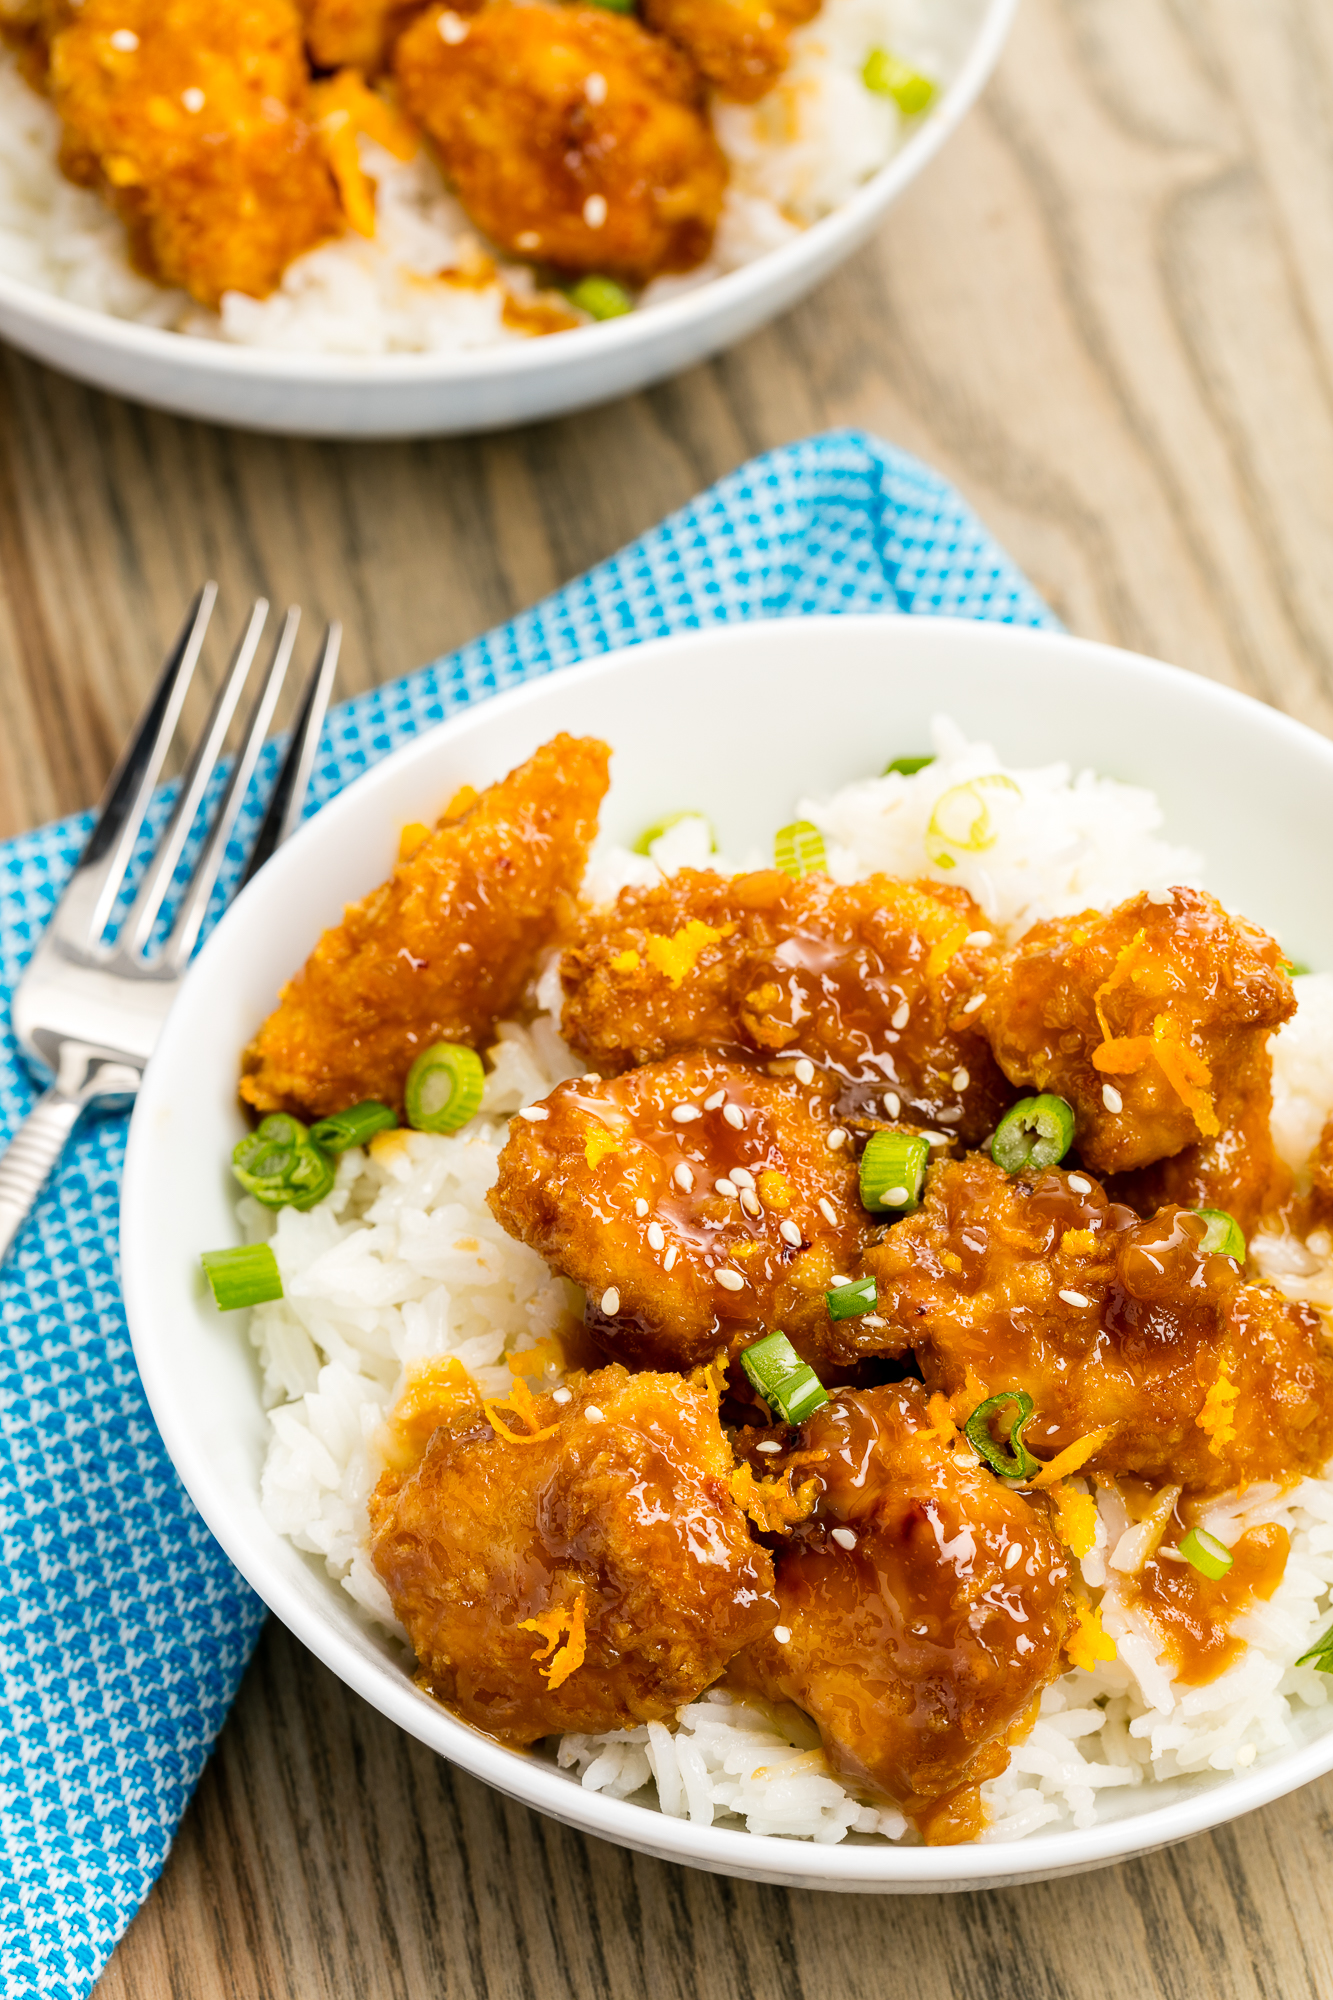 12 Easy Orange Chicken Recipes